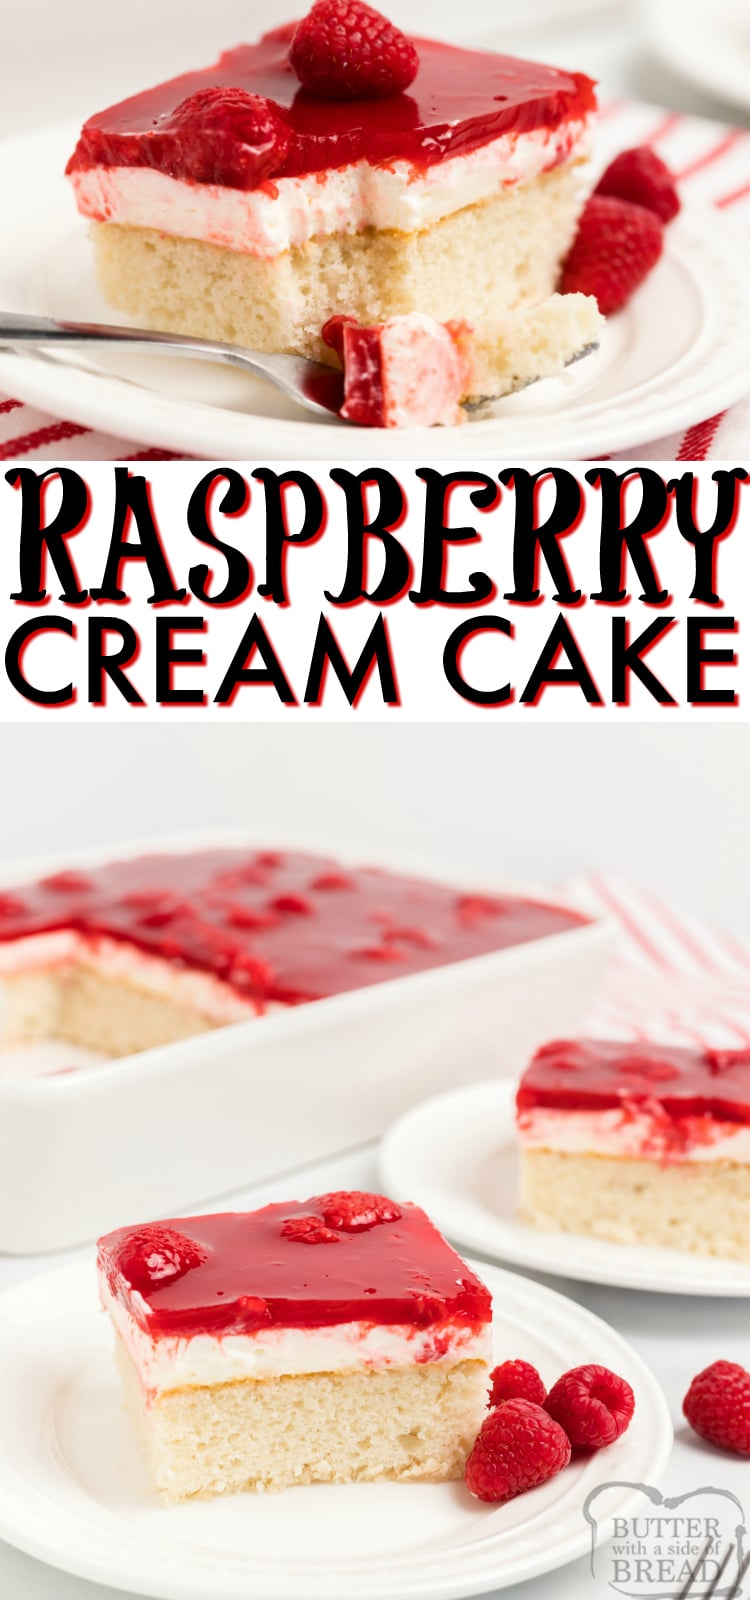 Raspberry Cream Cake begins with a white cake mix that is topped with sweet whipped cream, raspberries and danish dessert. Wonderful raspberry cake recipe with great flavors!